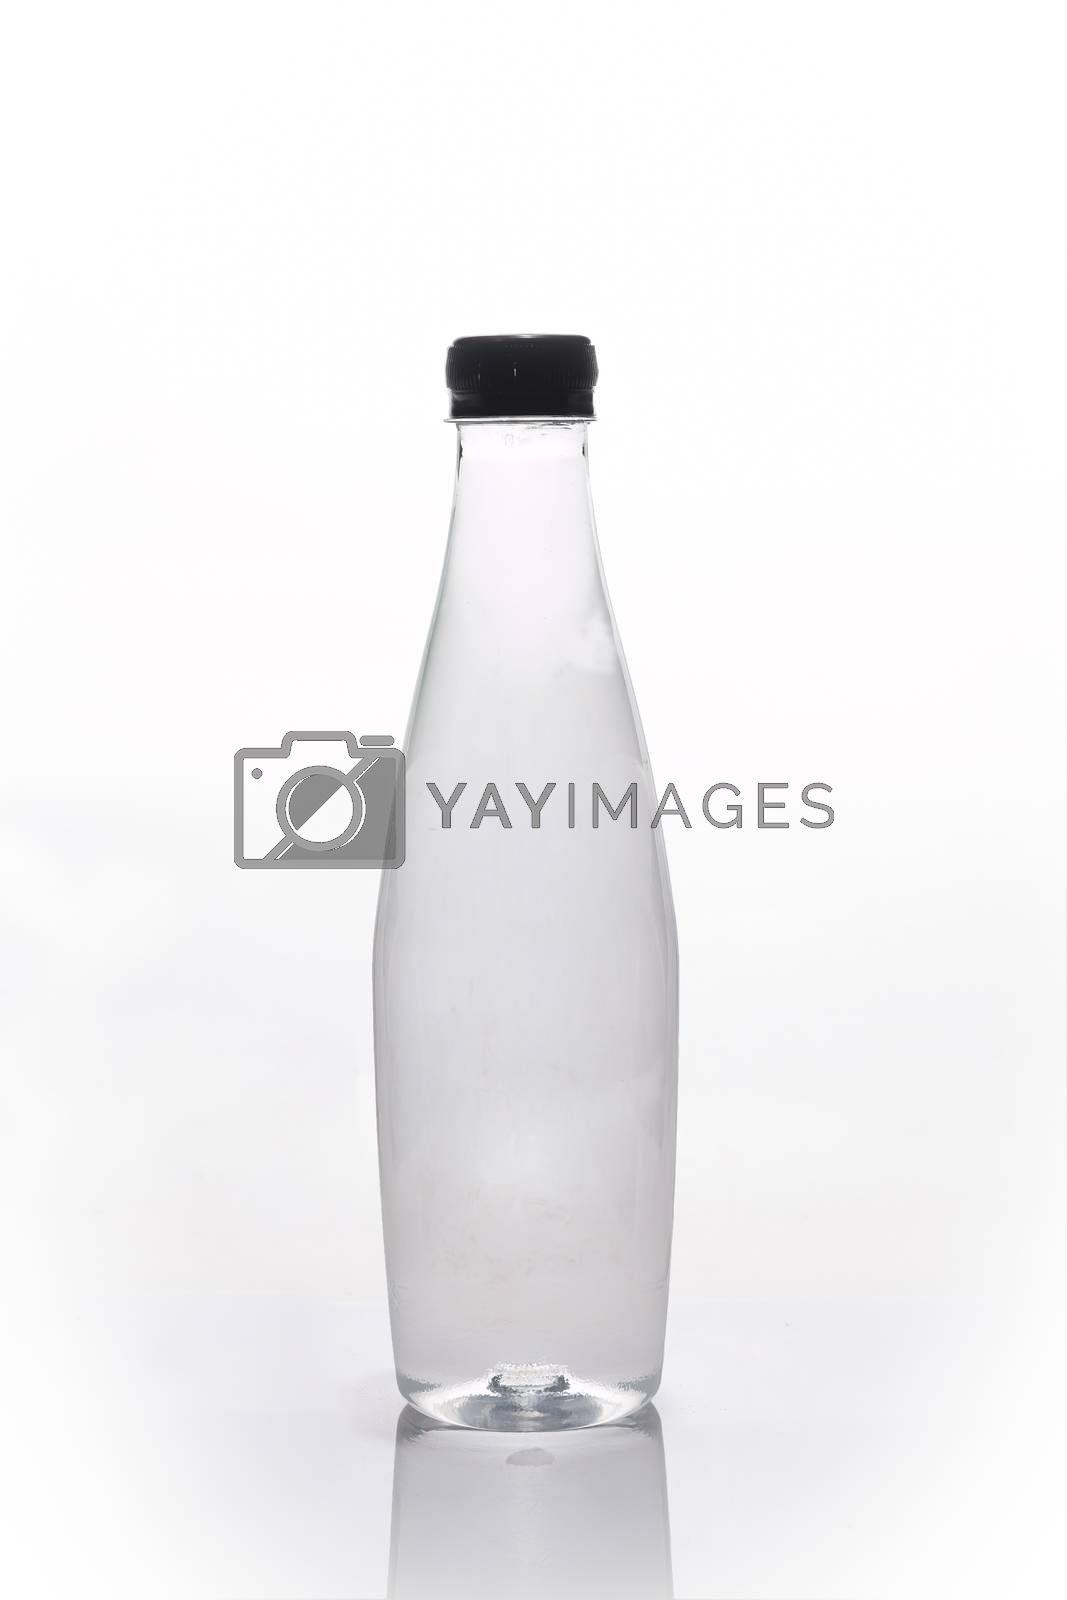 Royalty free image of Plastic bottle by AEyZRiO